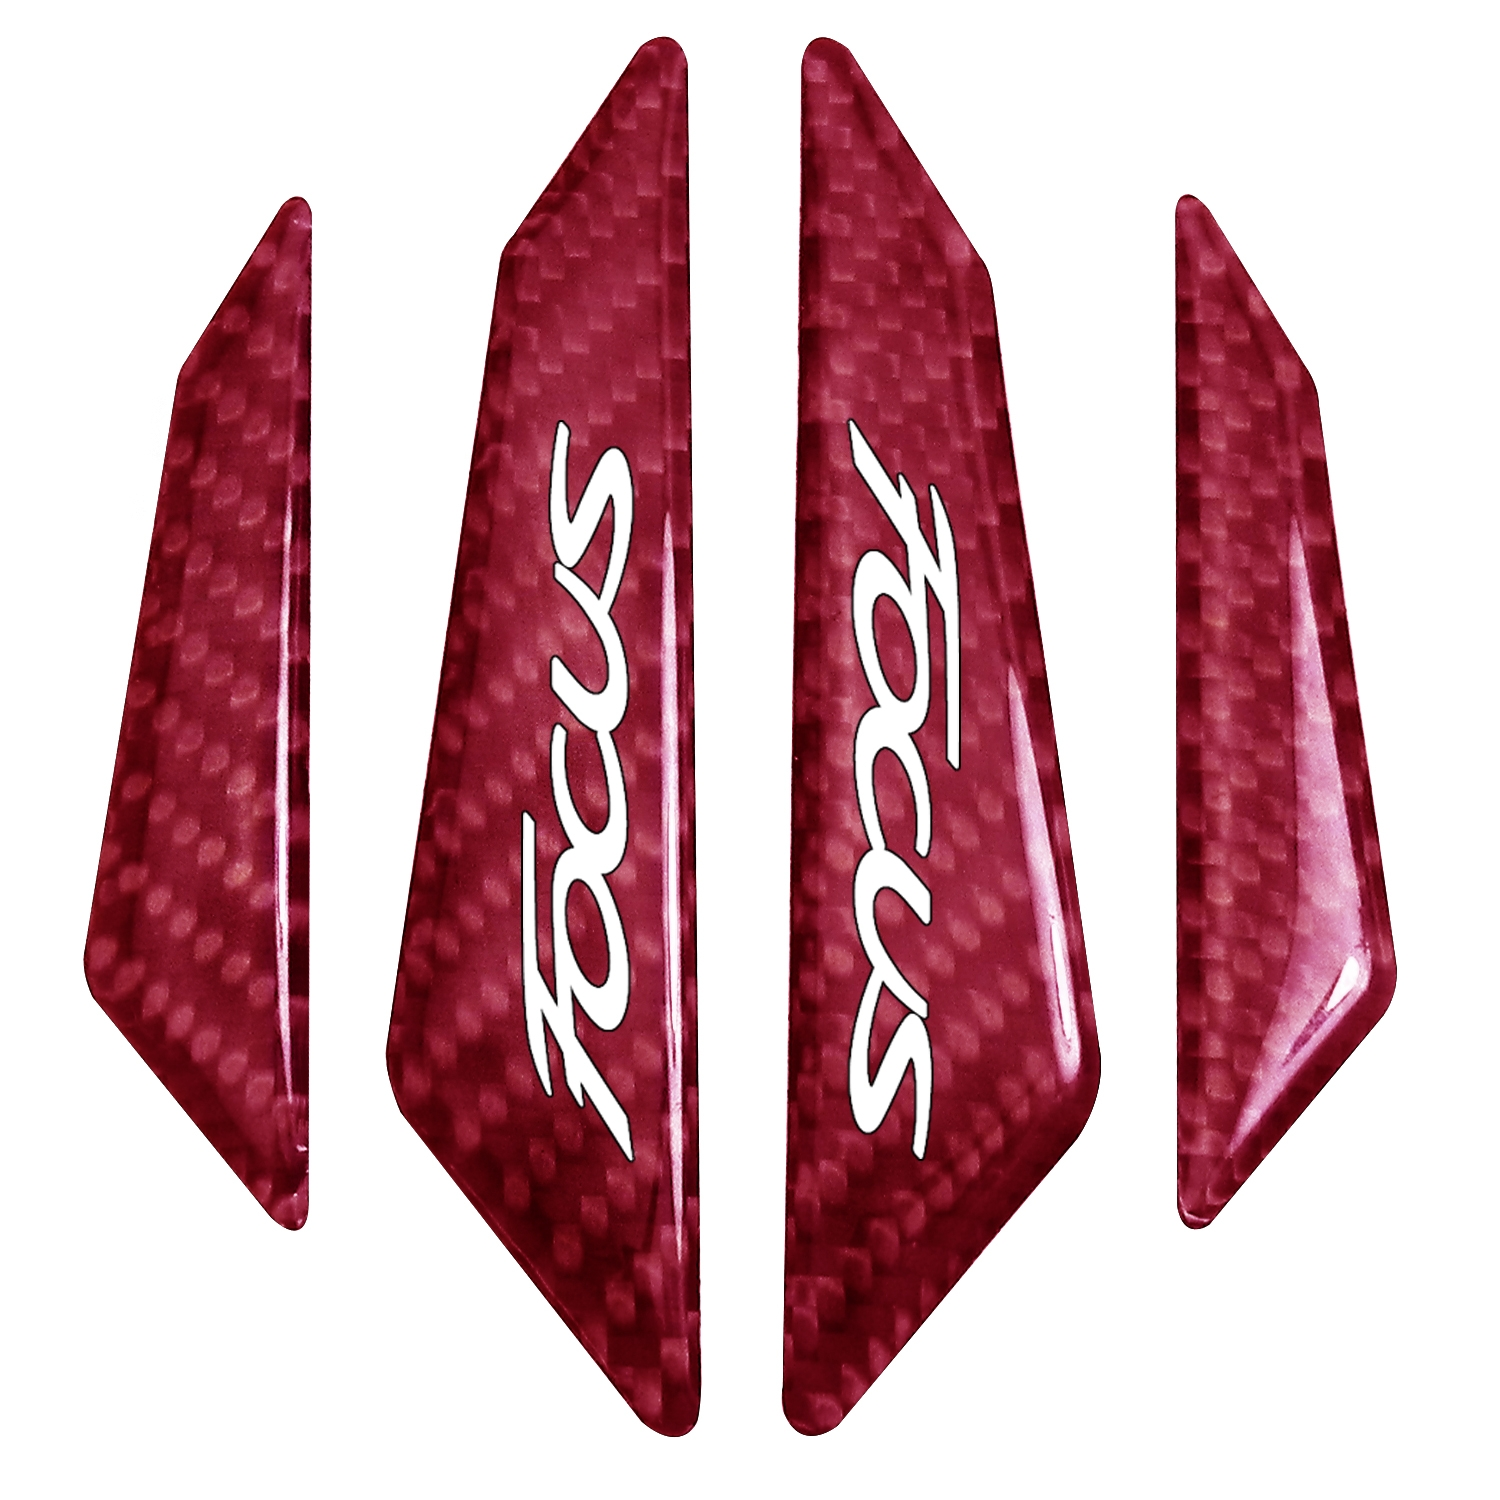 Ford Focus Real Red Carbon Fiber Door Edge Guard Decal